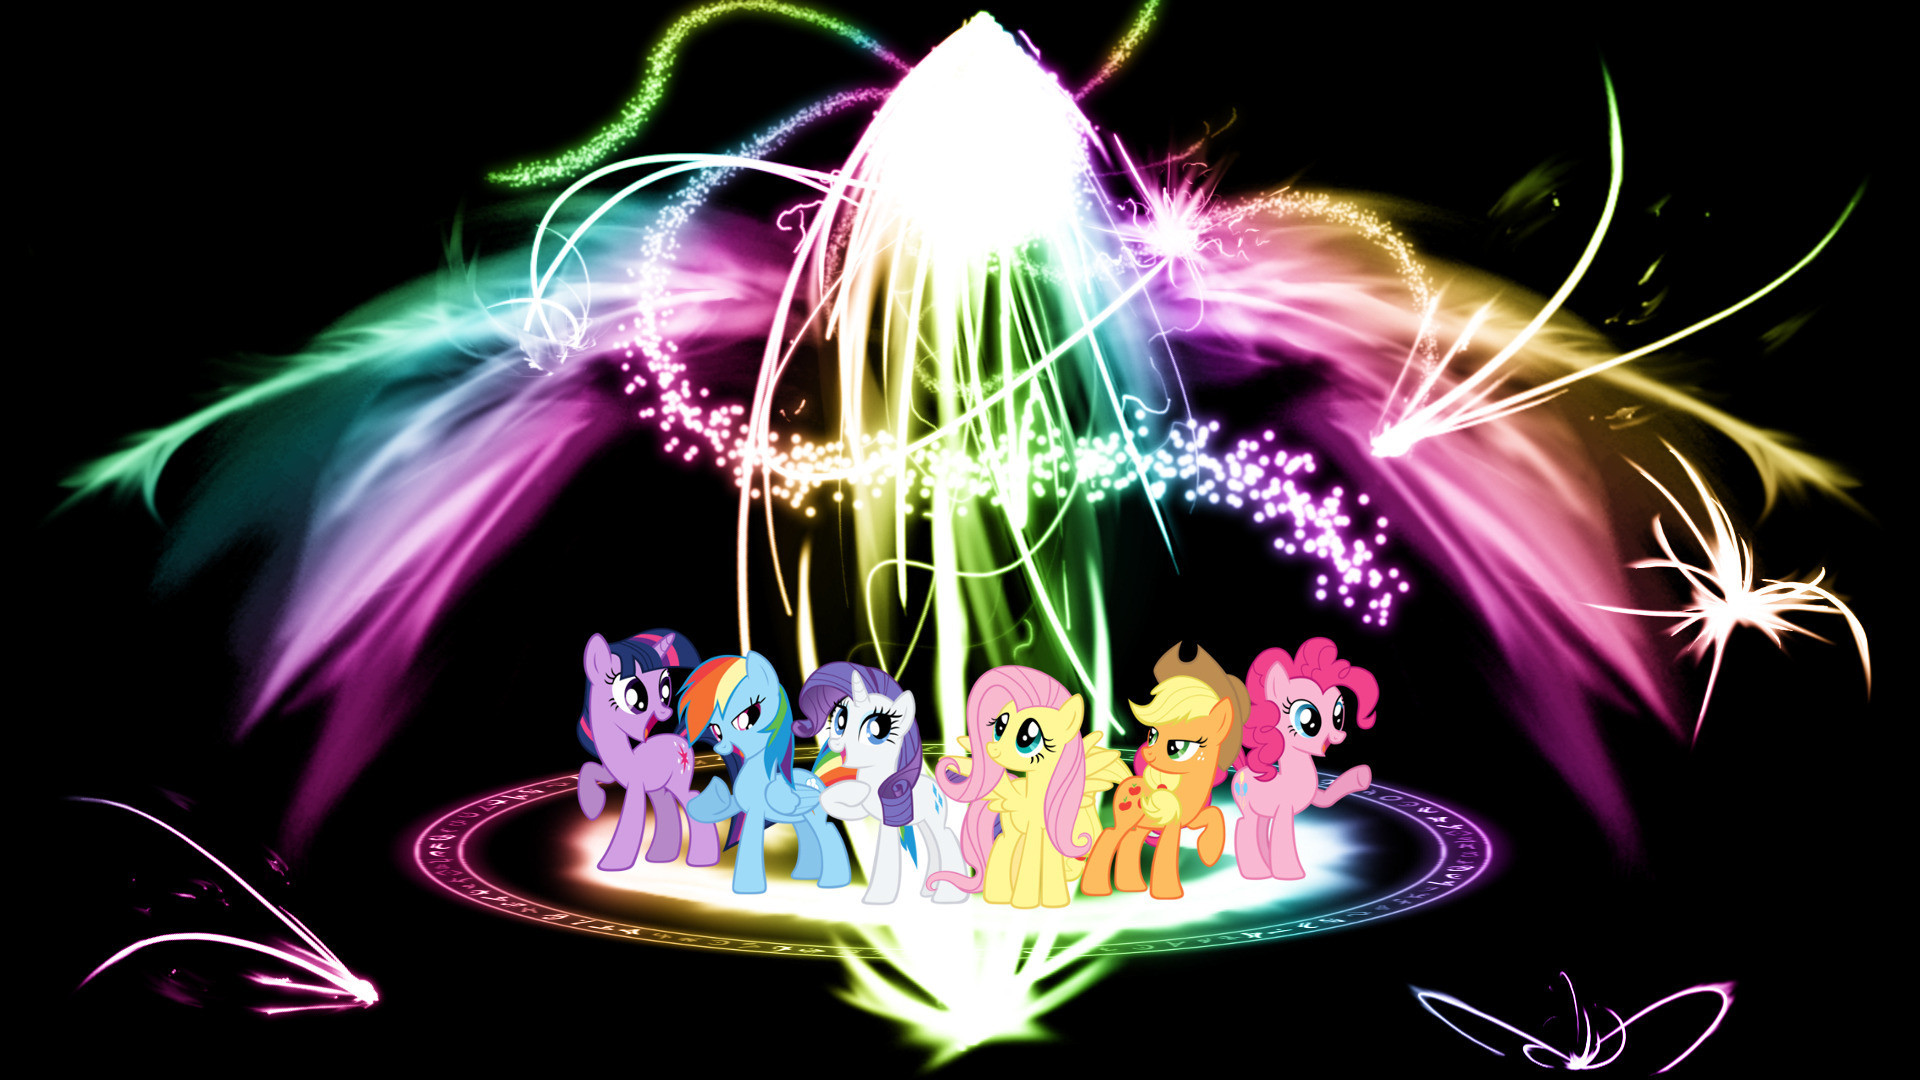 1920x1080 My Little Pony Friendship Is Magic HD Wallpapers Widescreen Wallpapers  Pictures Images #11395